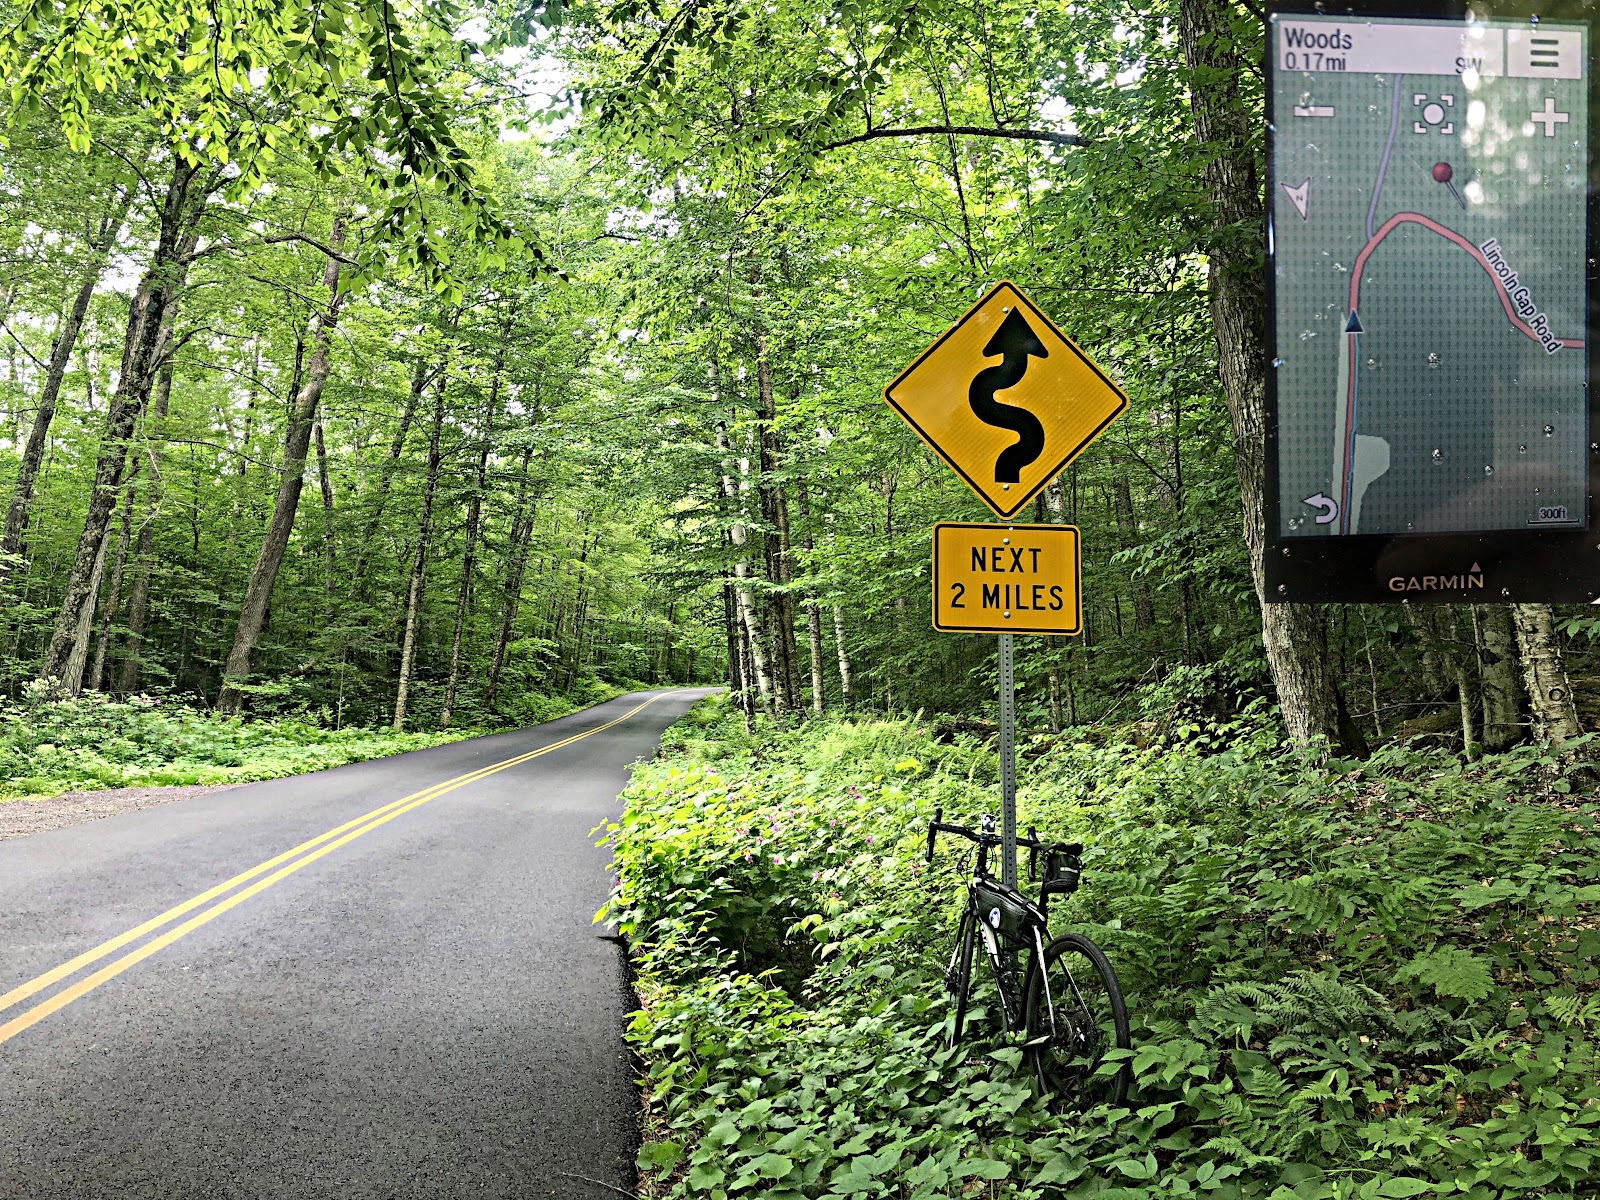 Cycling Lincoln Gap East - dense tree canopy along two lane road, bike propped against road sign noting winding road for next two miles